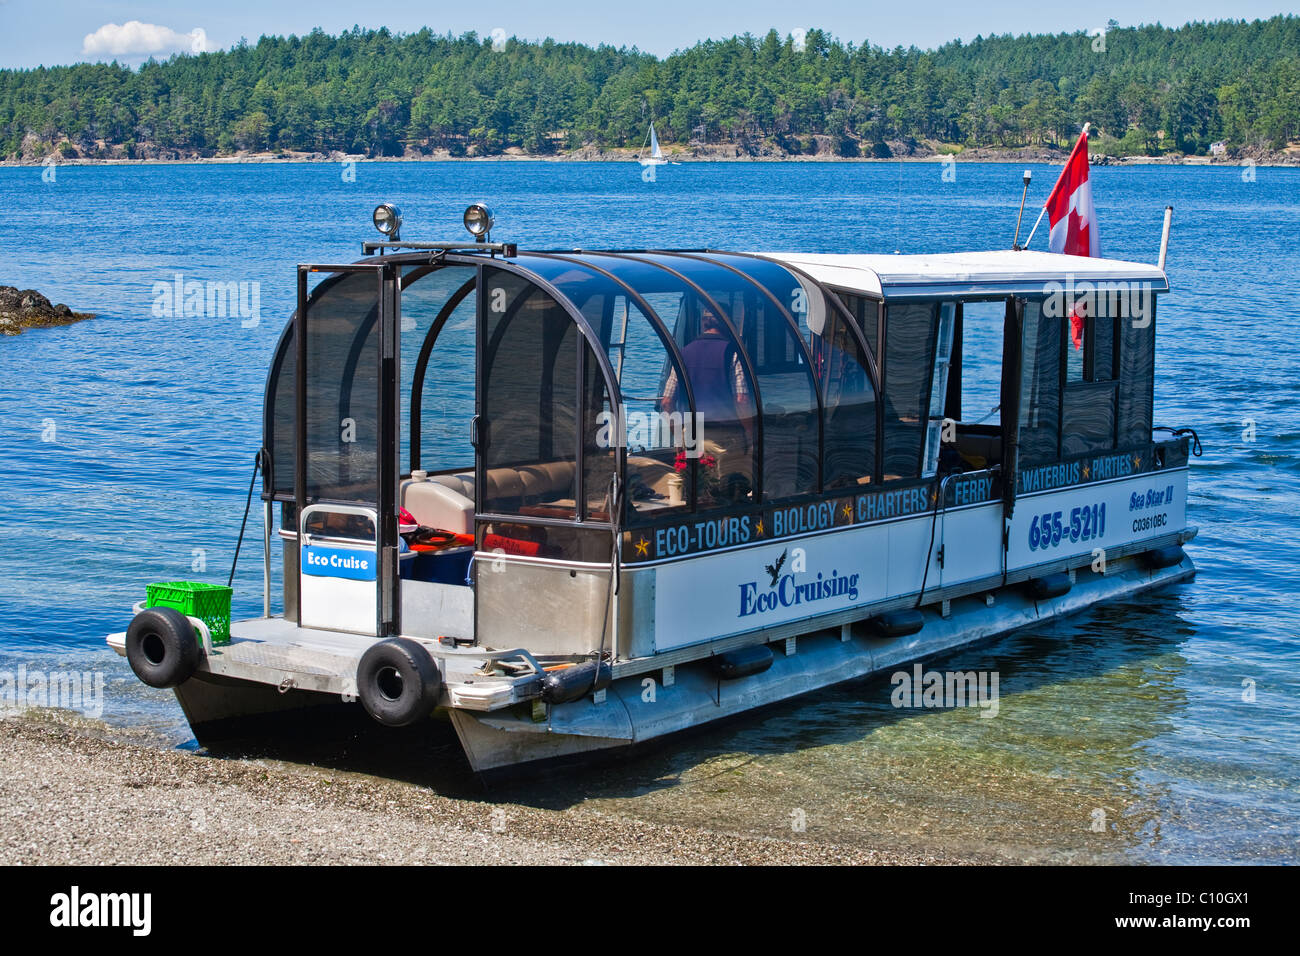 An observation vessel specifically designed for eco-cruising, beached on an island - Stock Image